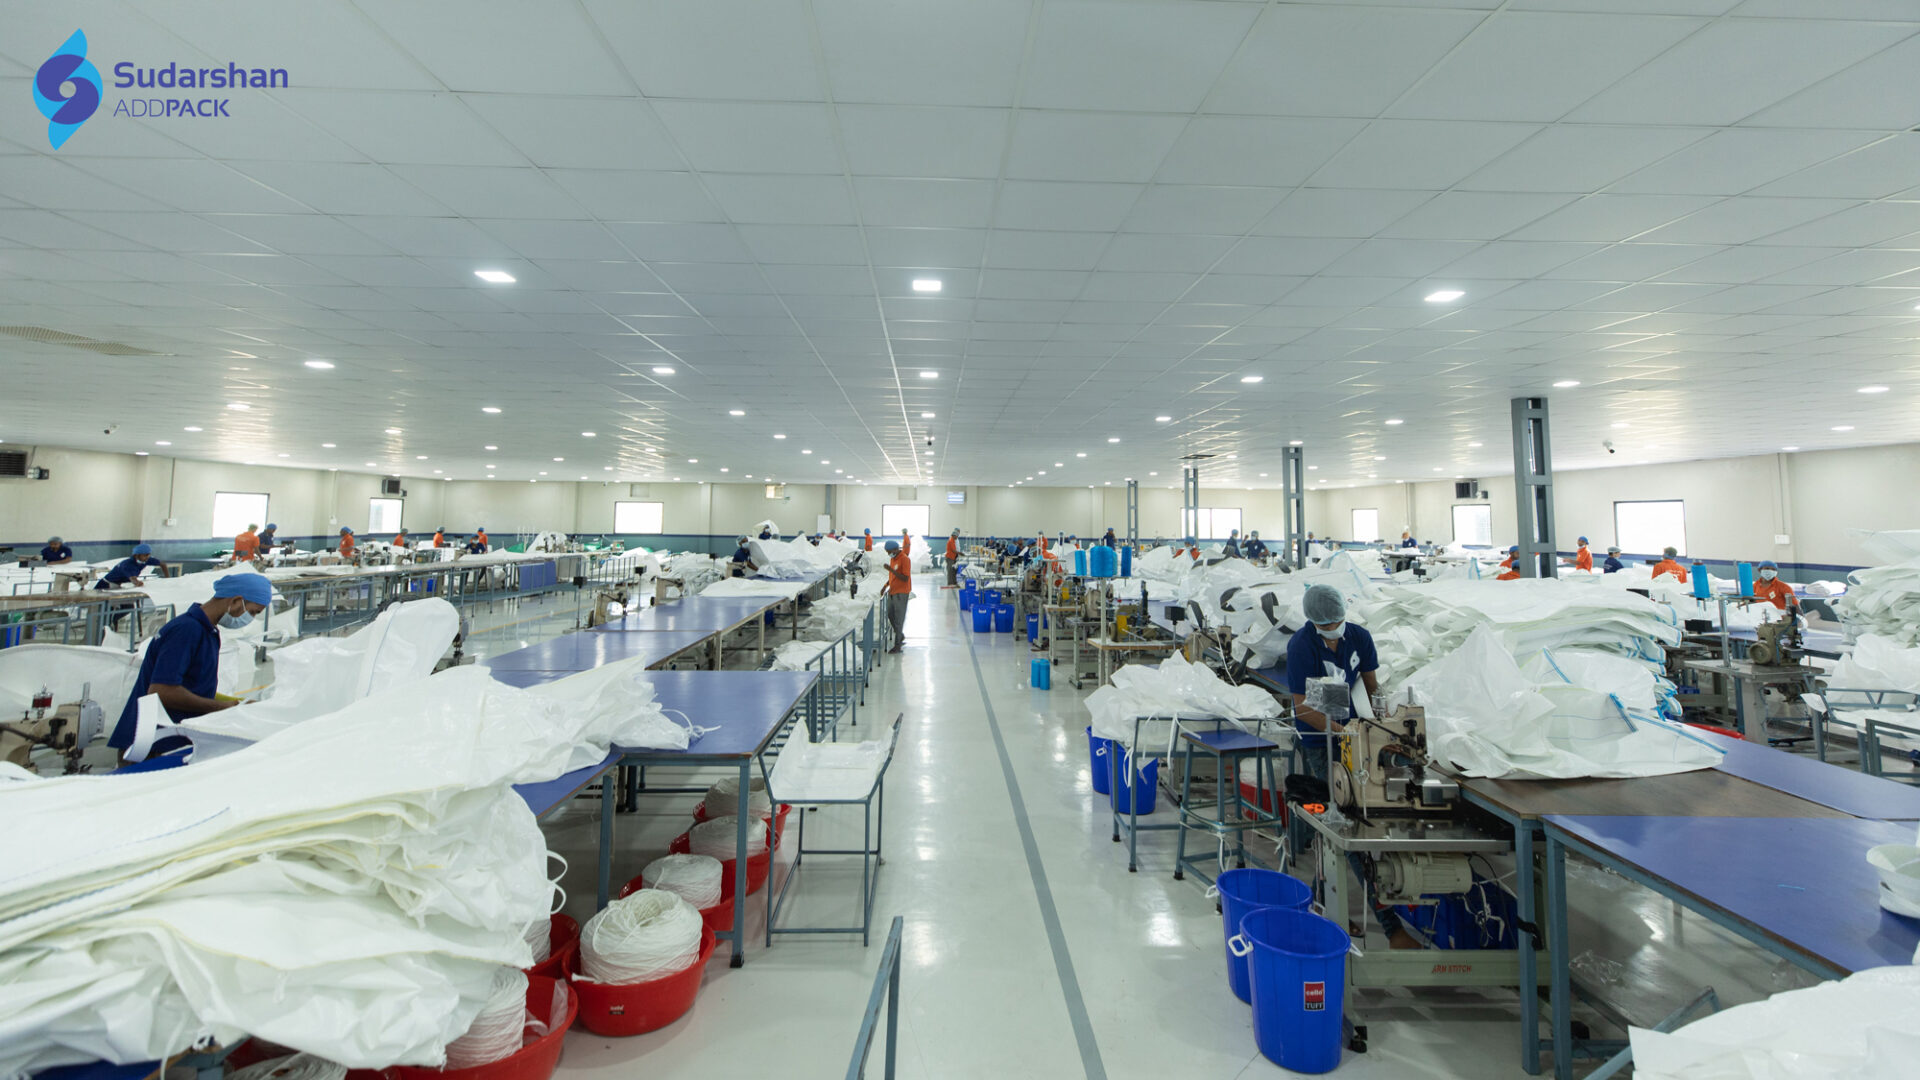 fibc bags manufacturer and supplier